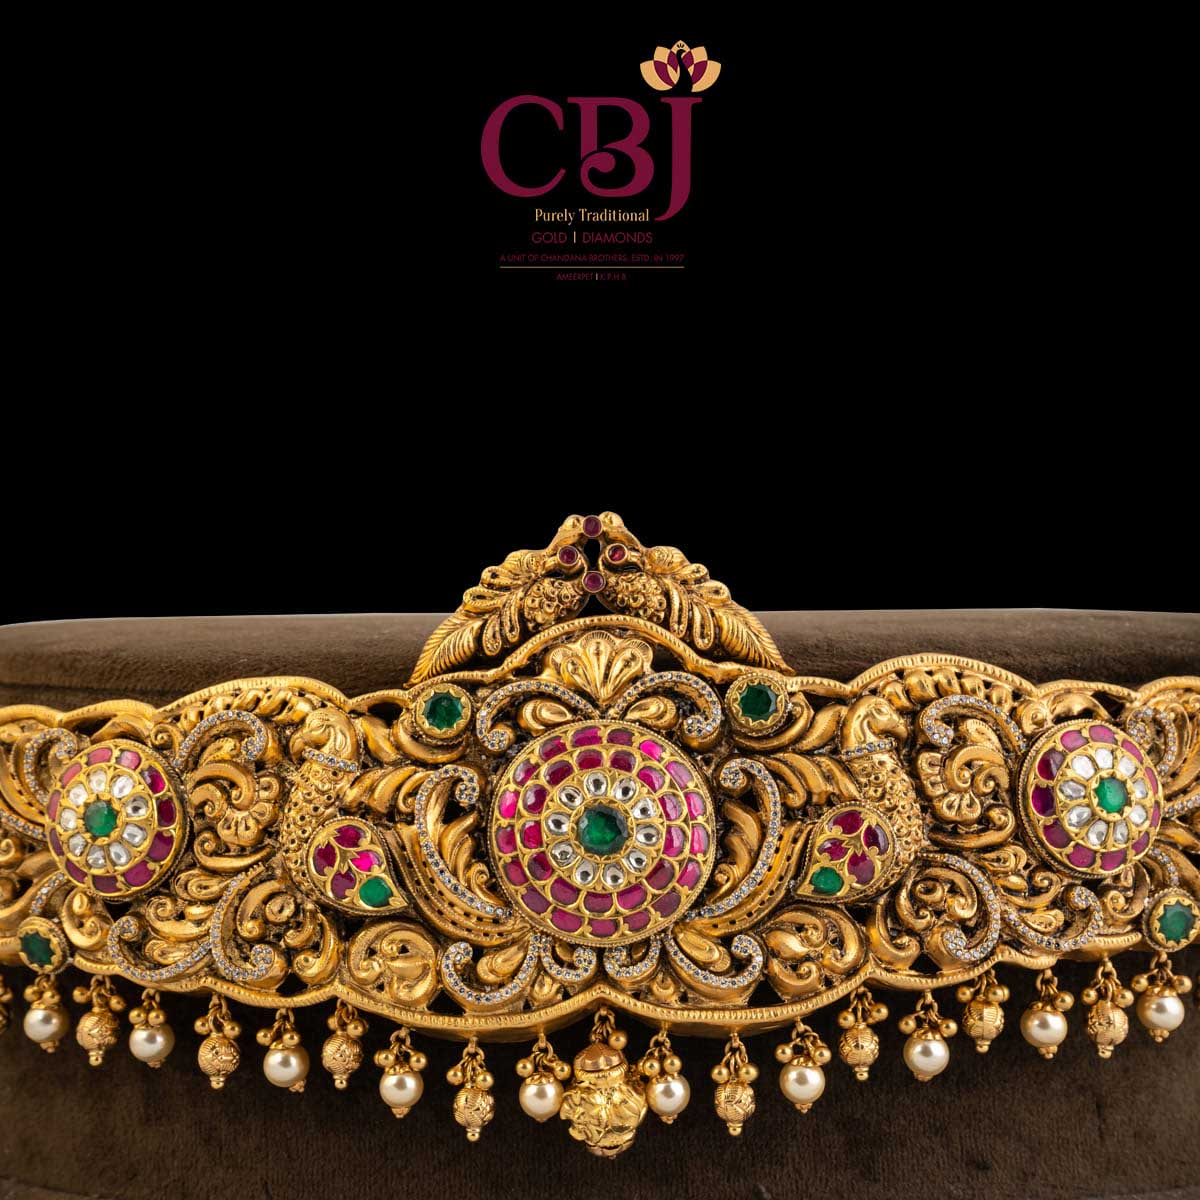 Belt style vaddanam featuring an antique design for a rustic charm.